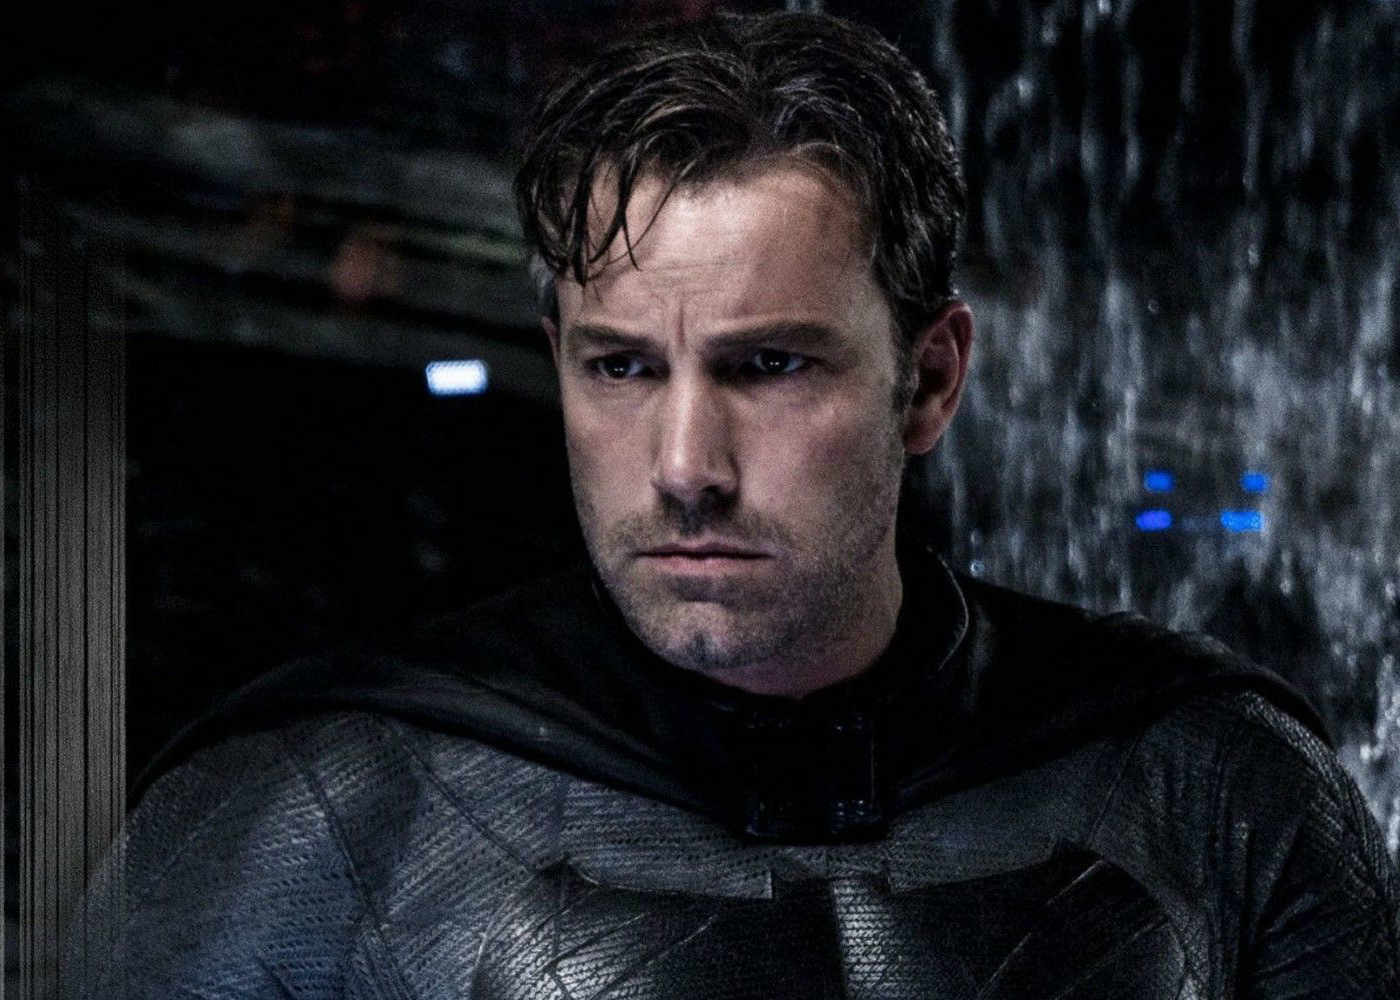 The Batman: Ben Affleck Unlikely to Step Down According to Producer